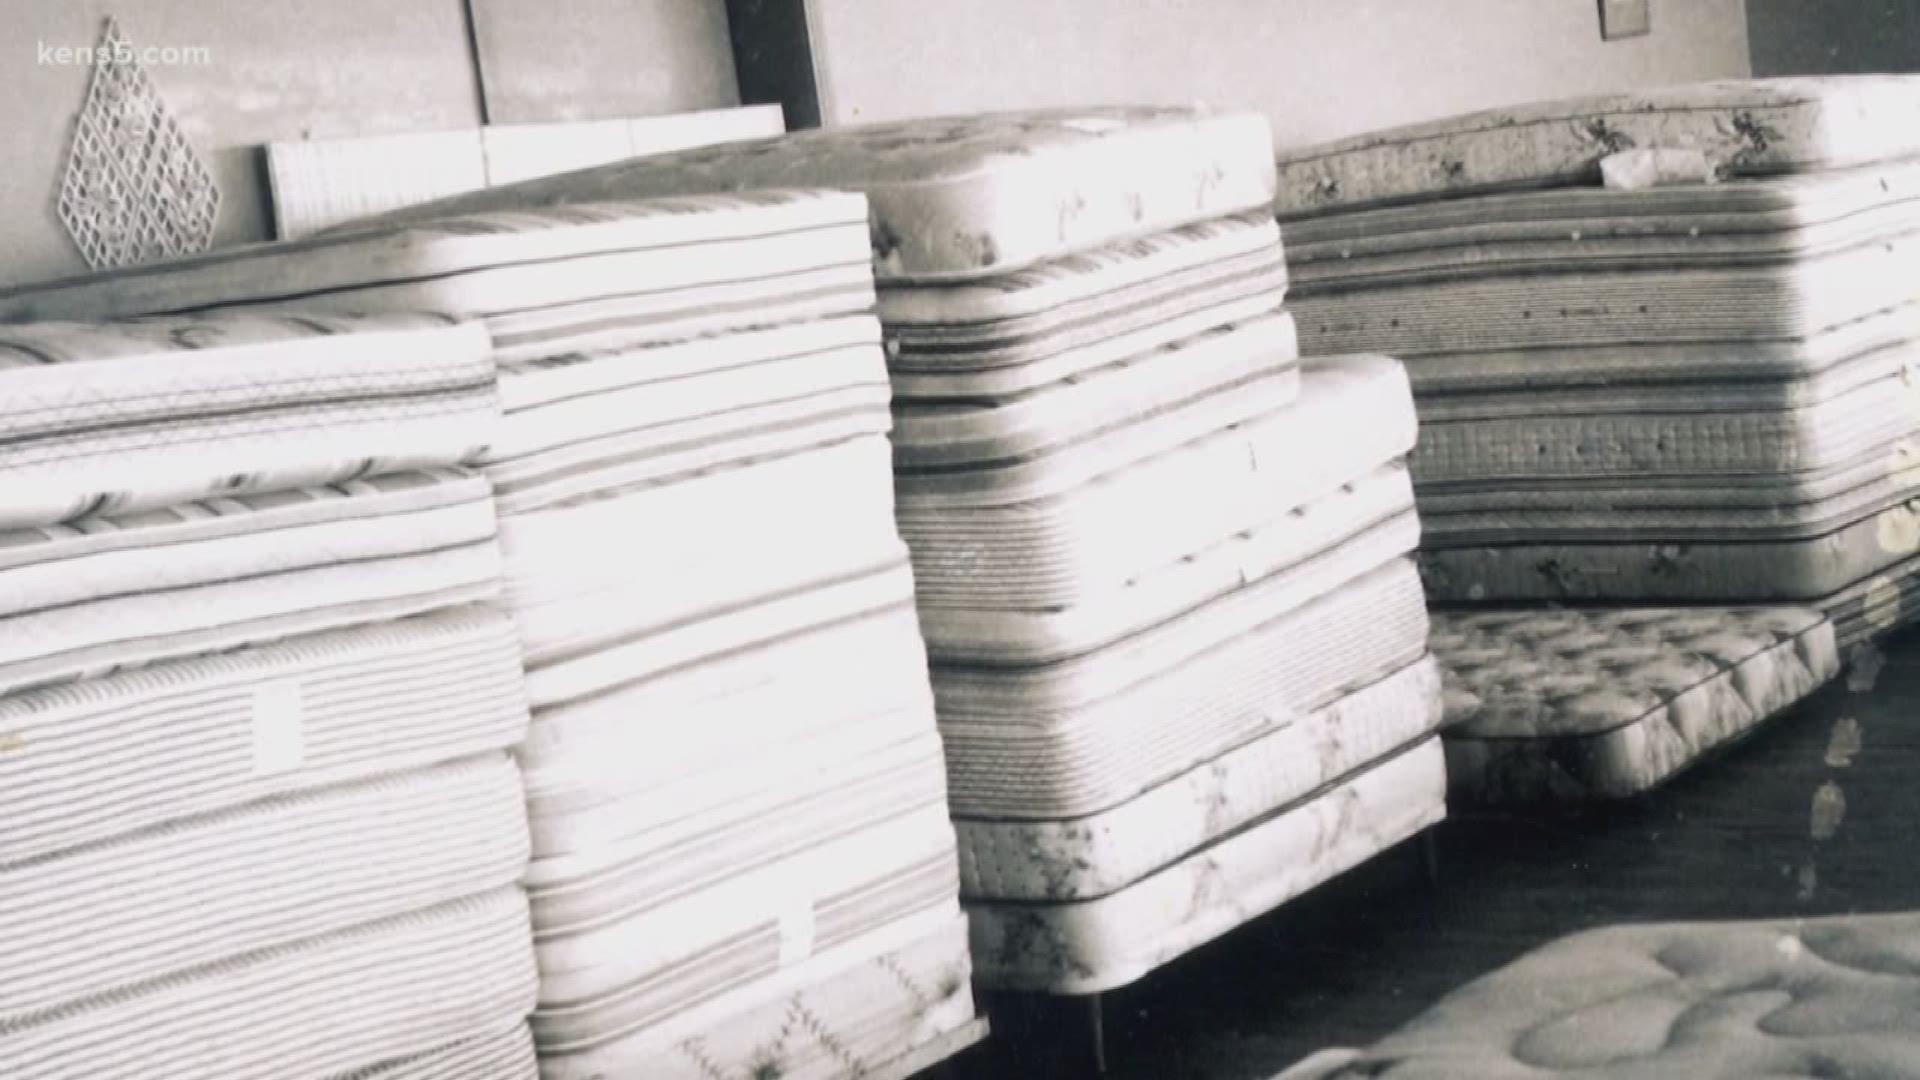 Cantwell Mattress 100 Years Of